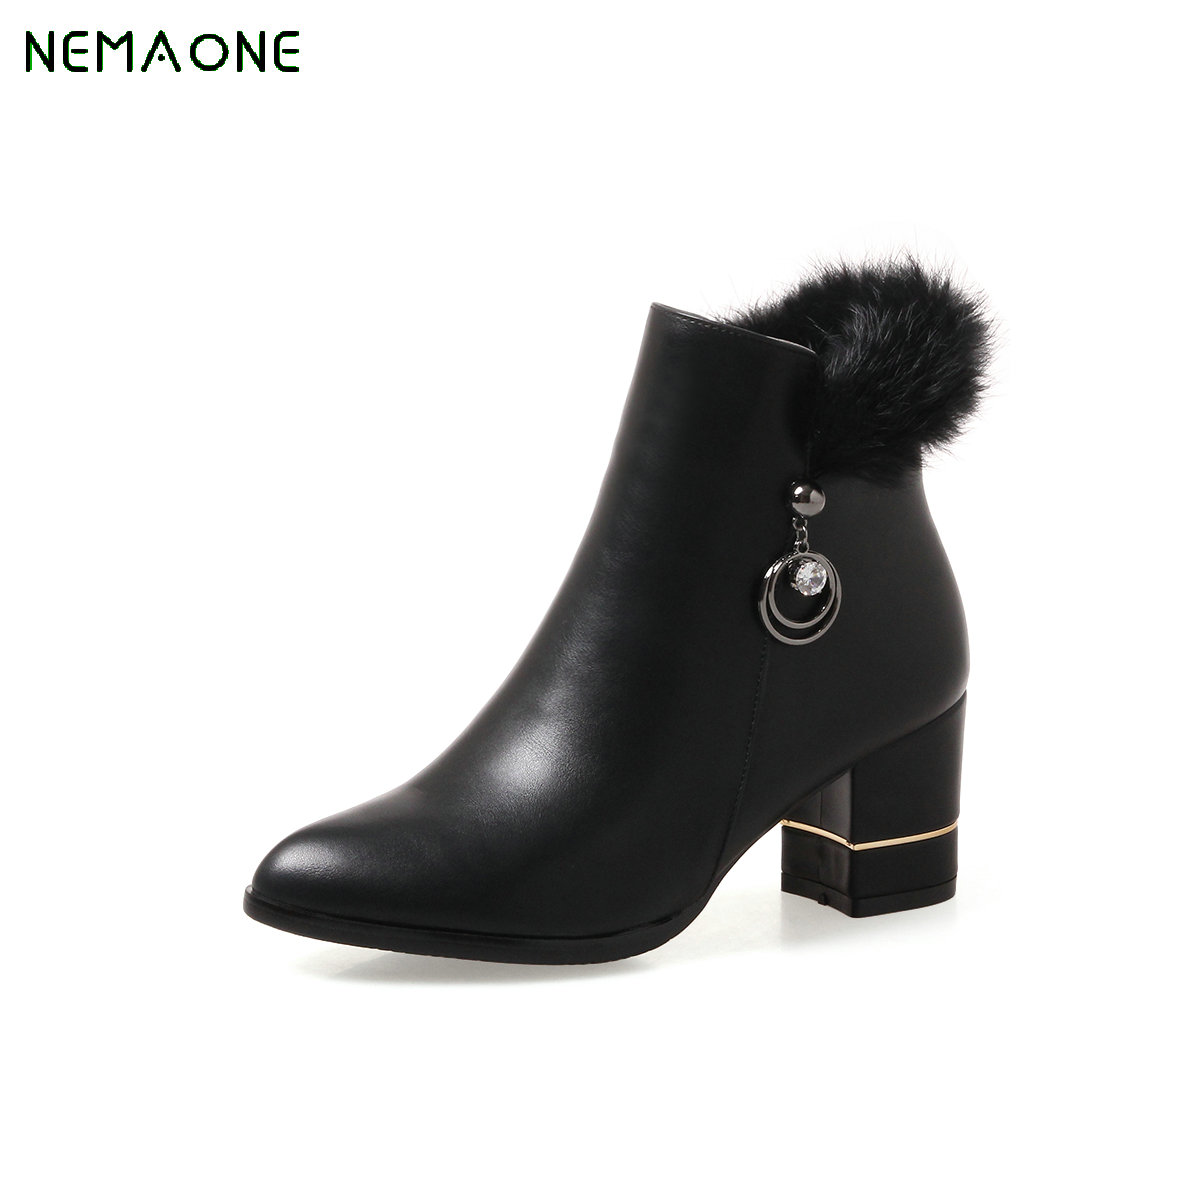 где купить NEMAONE Botas Women Footwear Pu Leather Round Toe Martin Boots Platform Shoes Female Autumn/winter High Heel Ankle Boots Zipper по лучшей цене